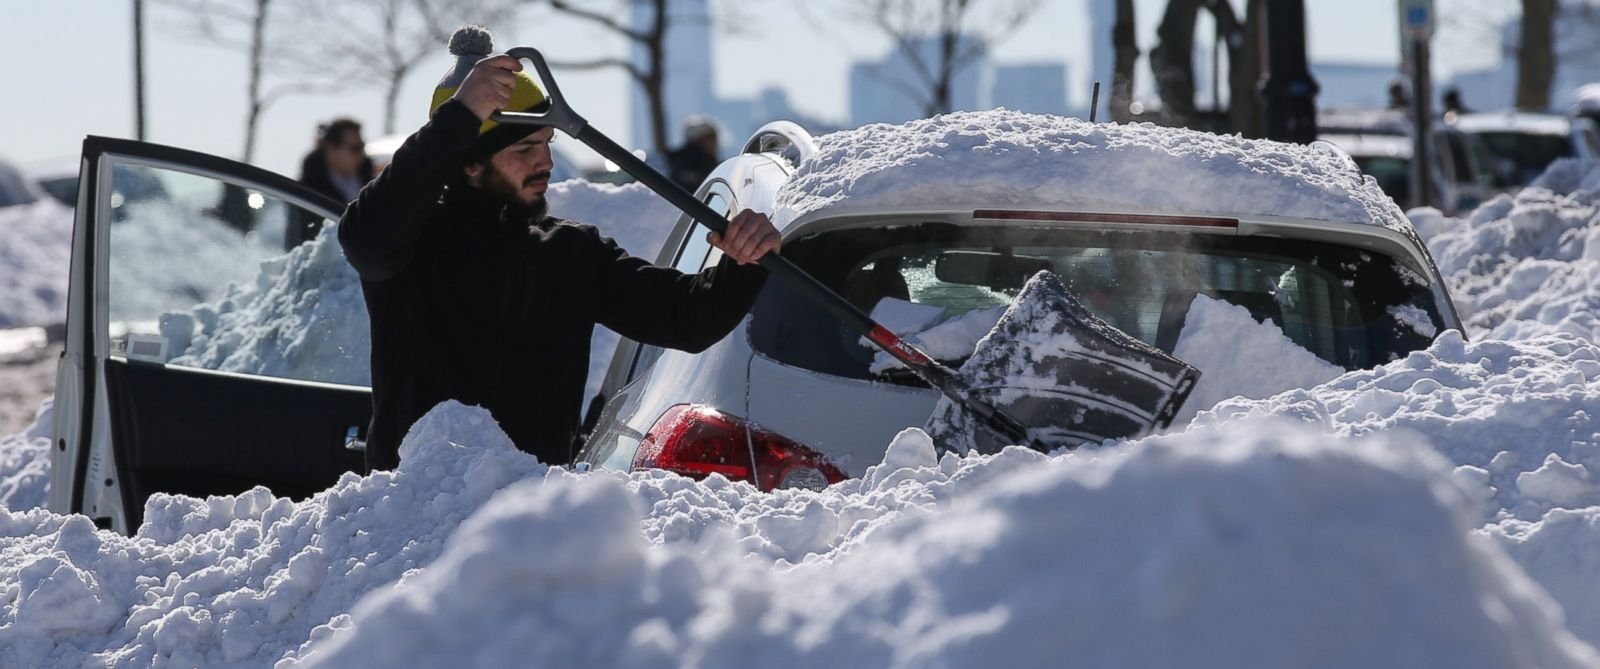 PHOTO:Residents attempt to dig their cars out the snow in New York, Jan. 24, 2016, after the winter storm Jonas hit New York.